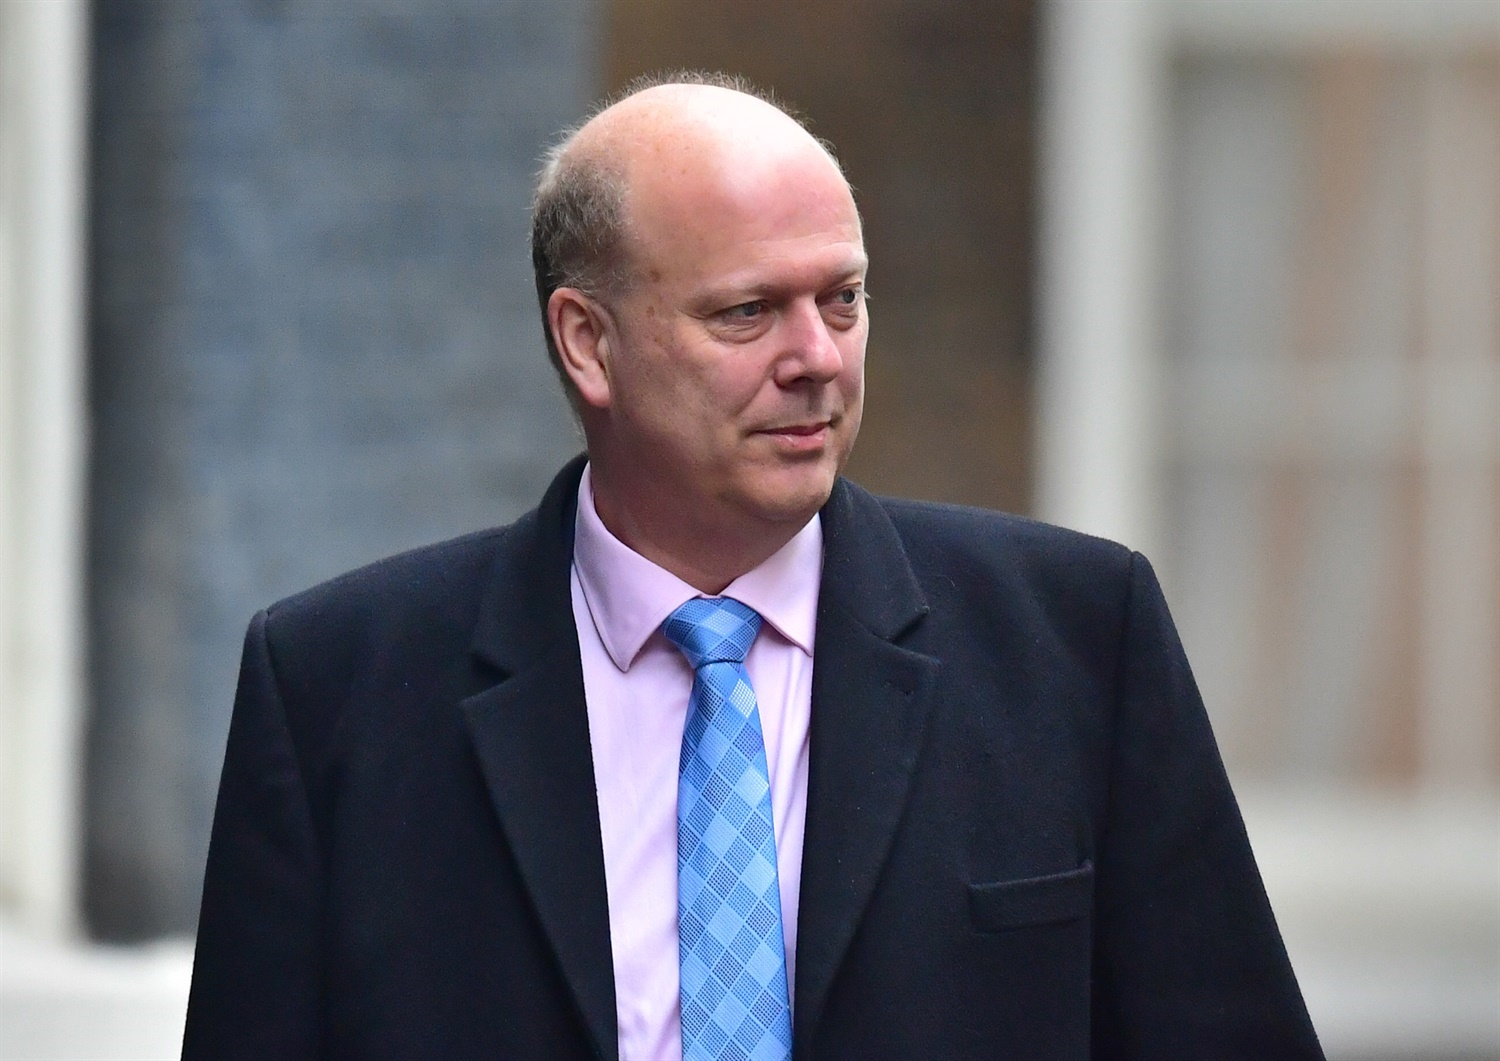 Grayling shakes up franchising and plans to overturn Beeching cuts